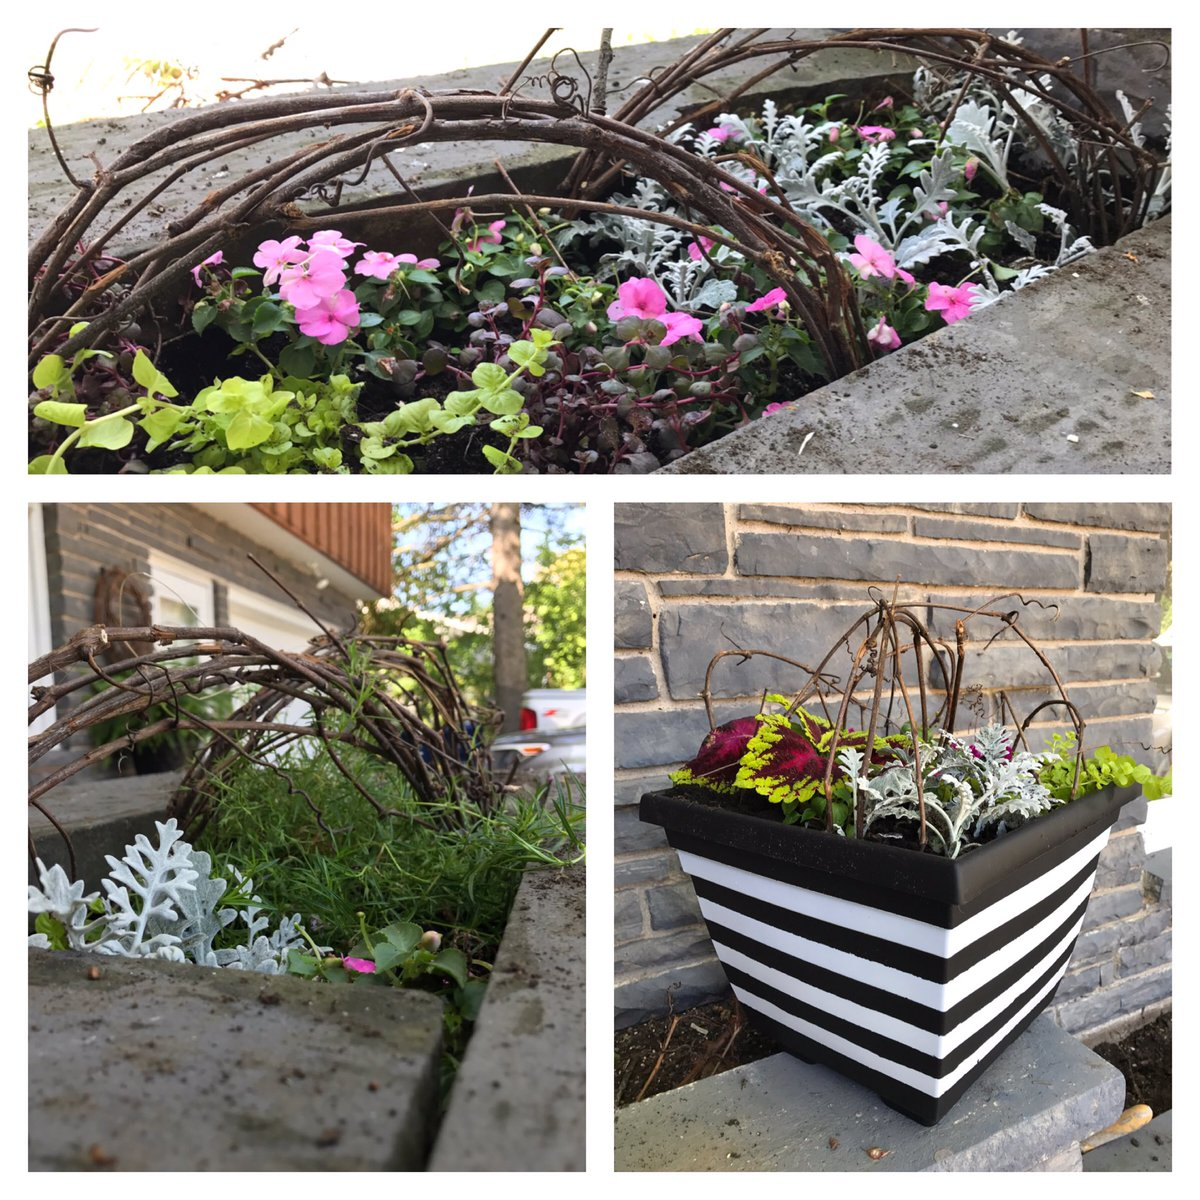 Let there be....plants!!! #greenthumb is not my gifting. I wish them luck #curbappeal #planters #blackandwhite #michellemartelinteriors<br>http://pic.twitter.com/vawEIPJc4R